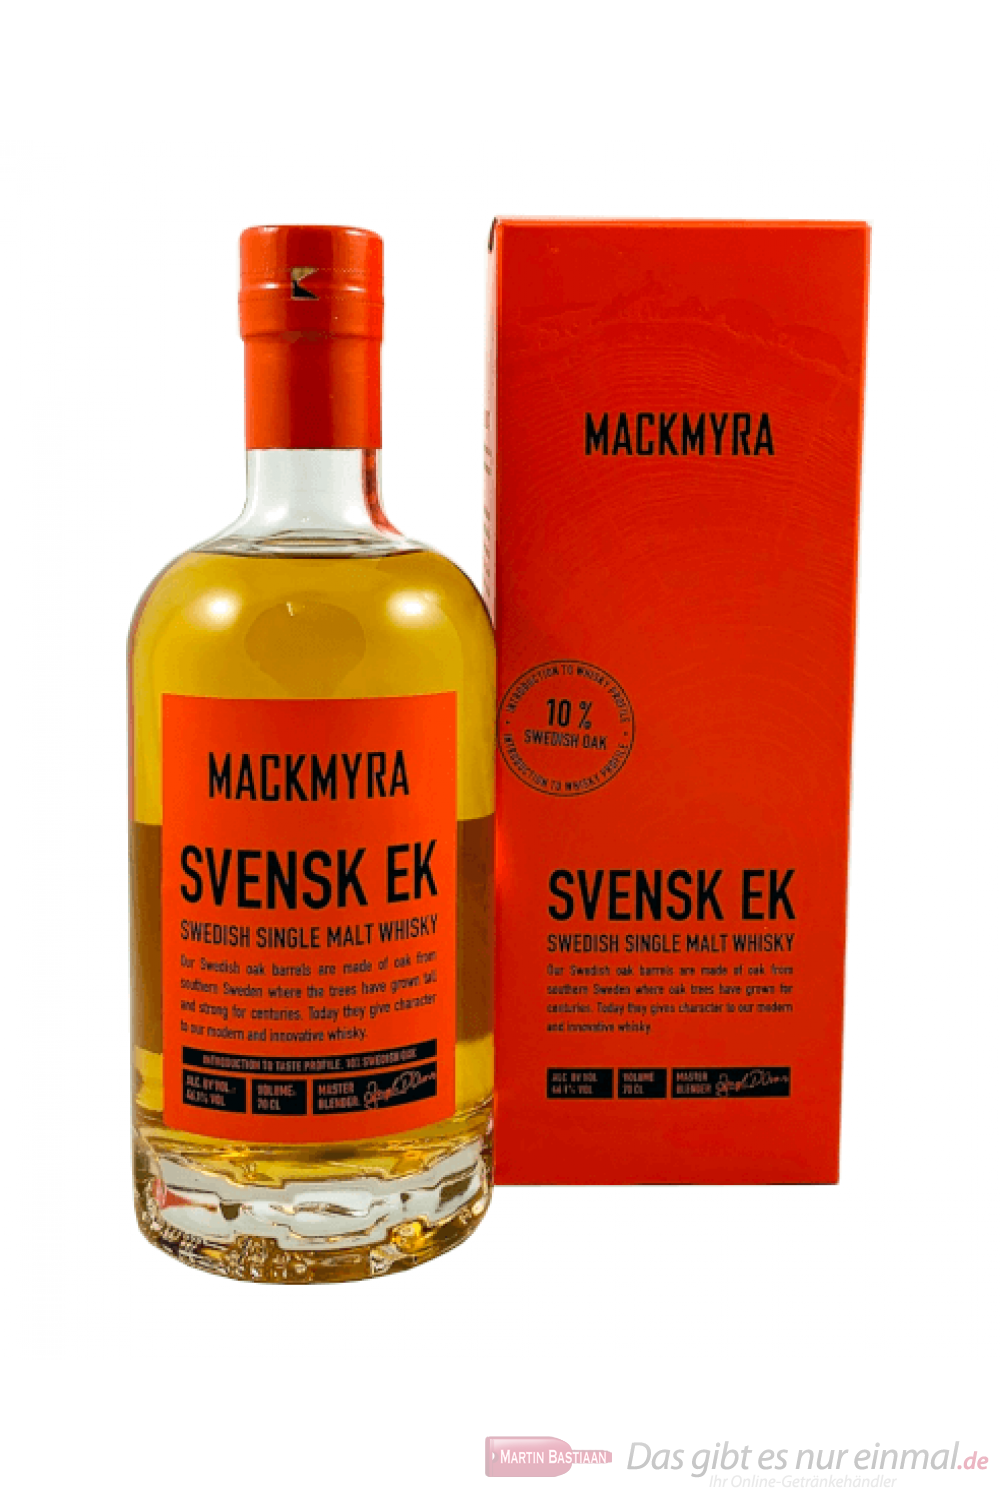 Mackmyra Svensk Ek Swedish Single Malt Whisky 0,7l